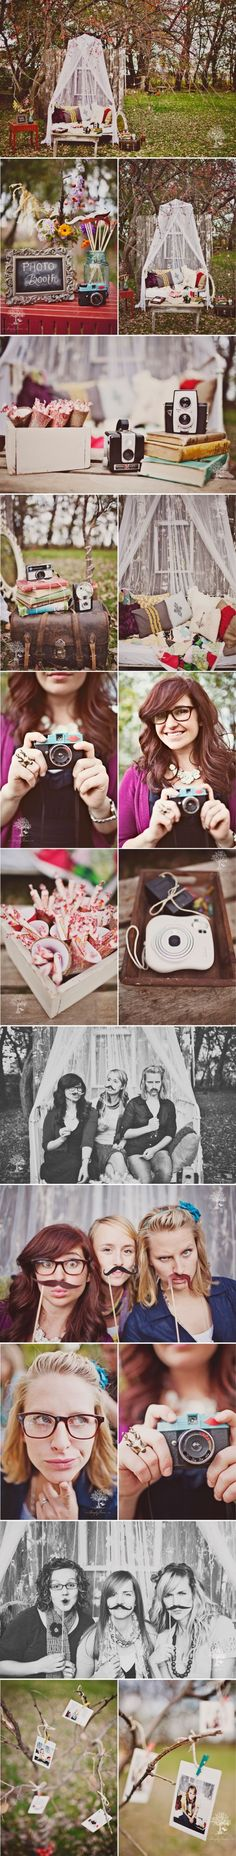 Okay cute idea with the photo booth...might be a fun idea to have at a wedding or even set up for a family gathering or holiday party? by shorena ratiani